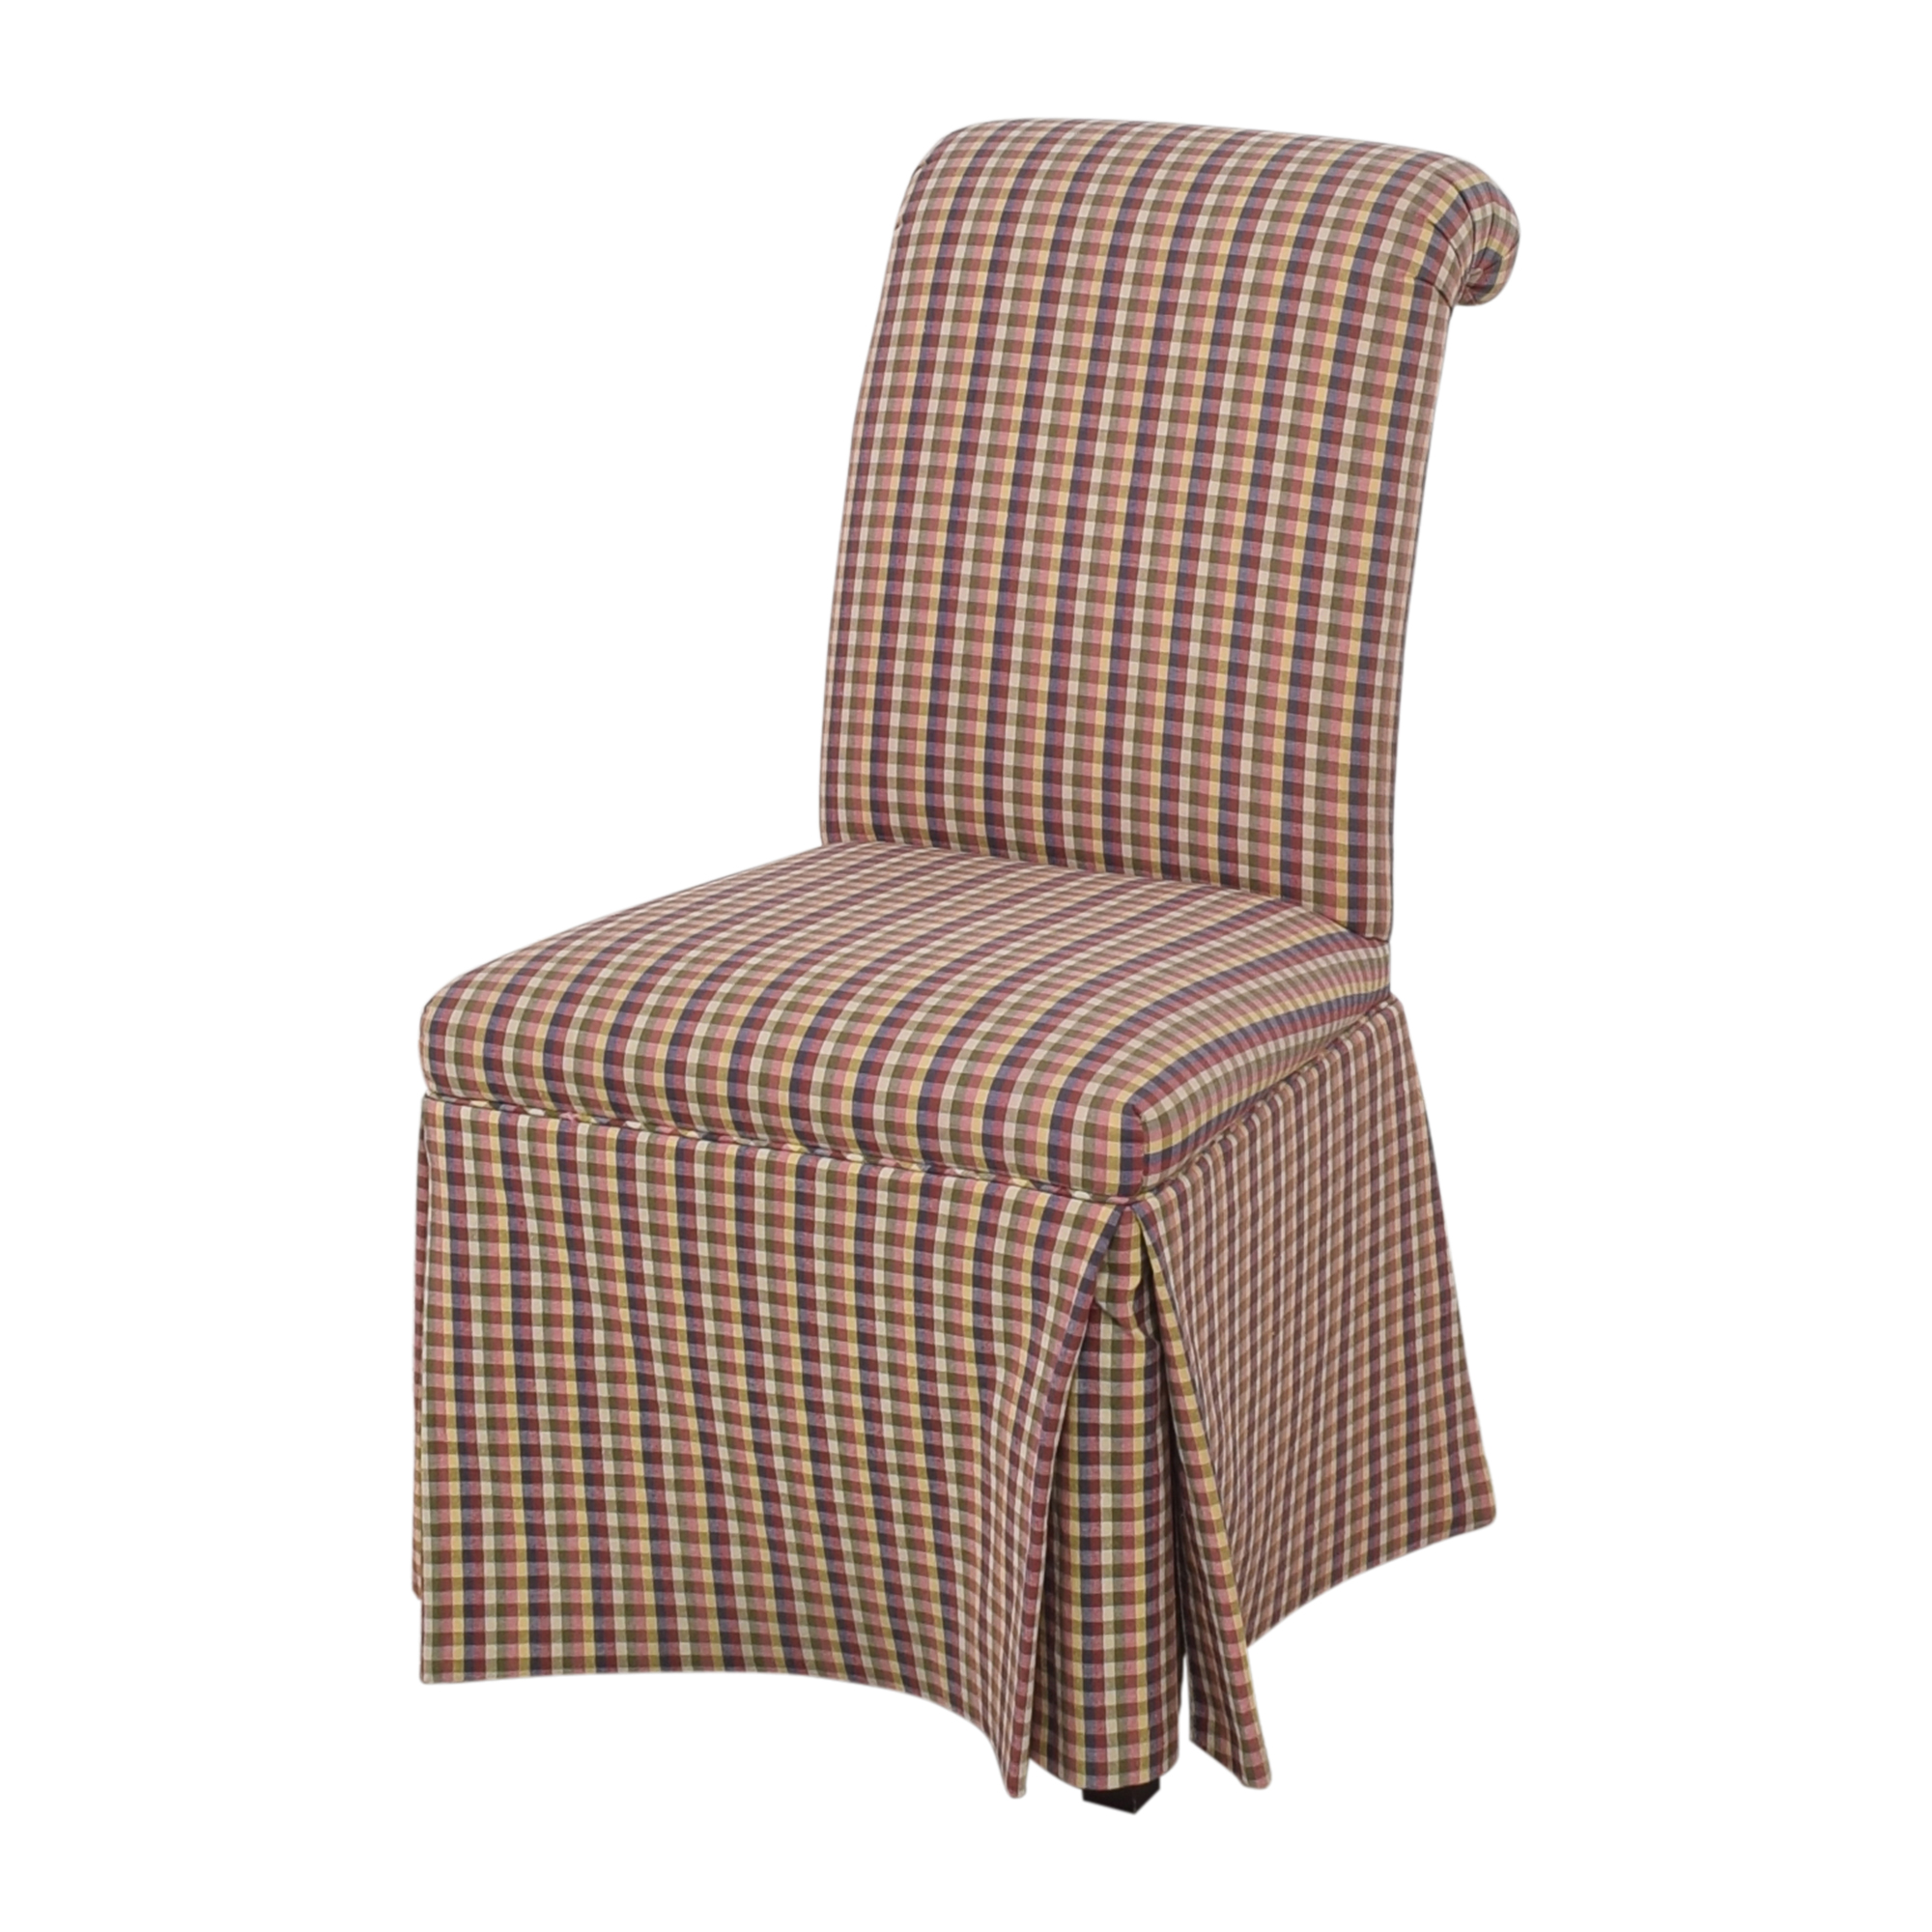 Sherrill Furniture Slipcovered Scroll Top Dining Chairs / Chairs